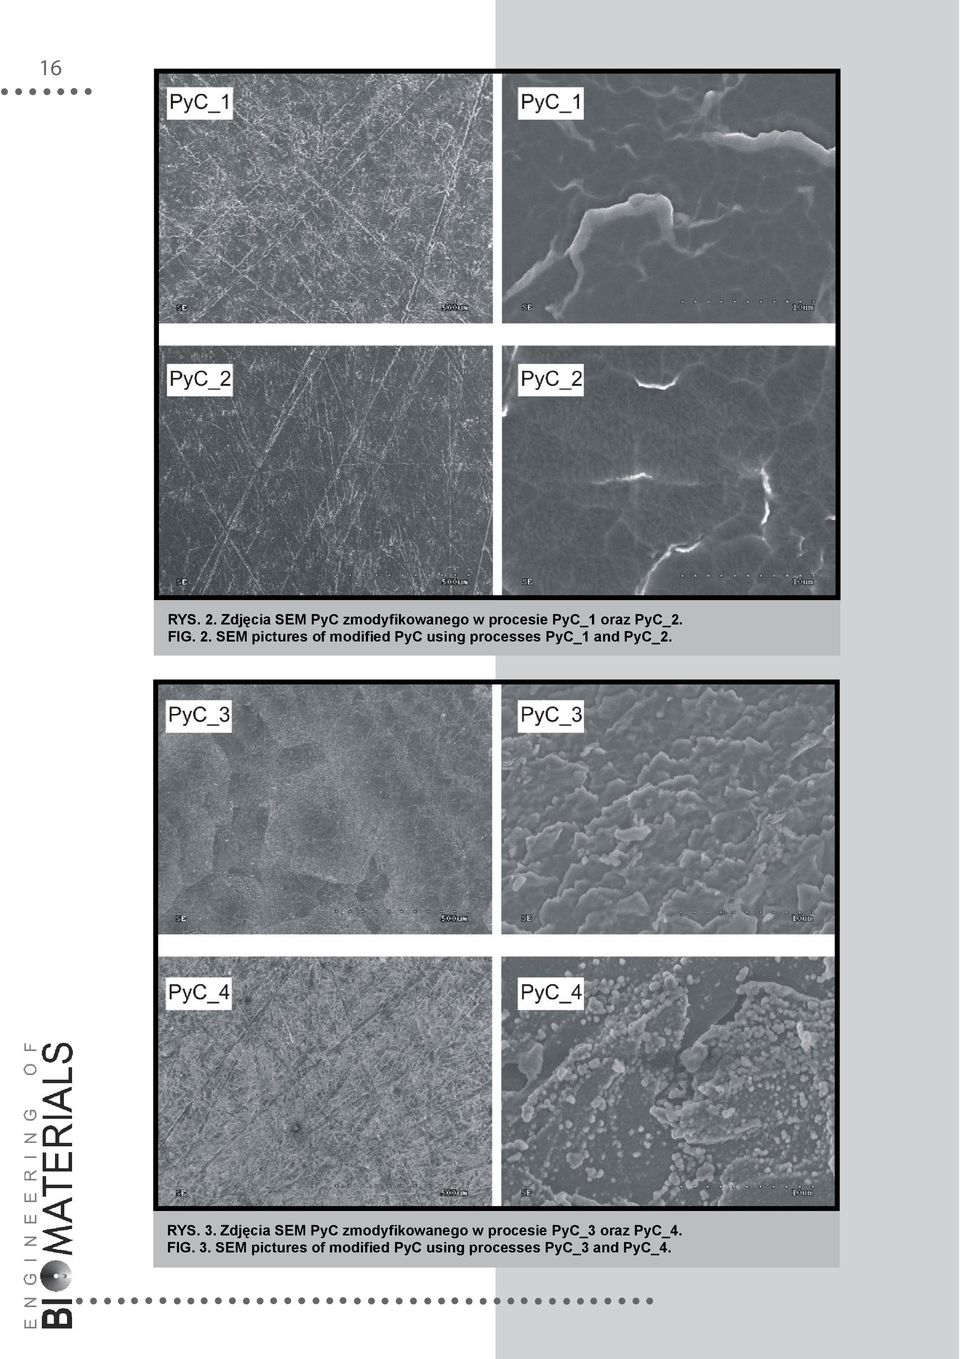 SEM pictures of modified PyC using processes PyC_1 and PyC_2. RYS. 3.